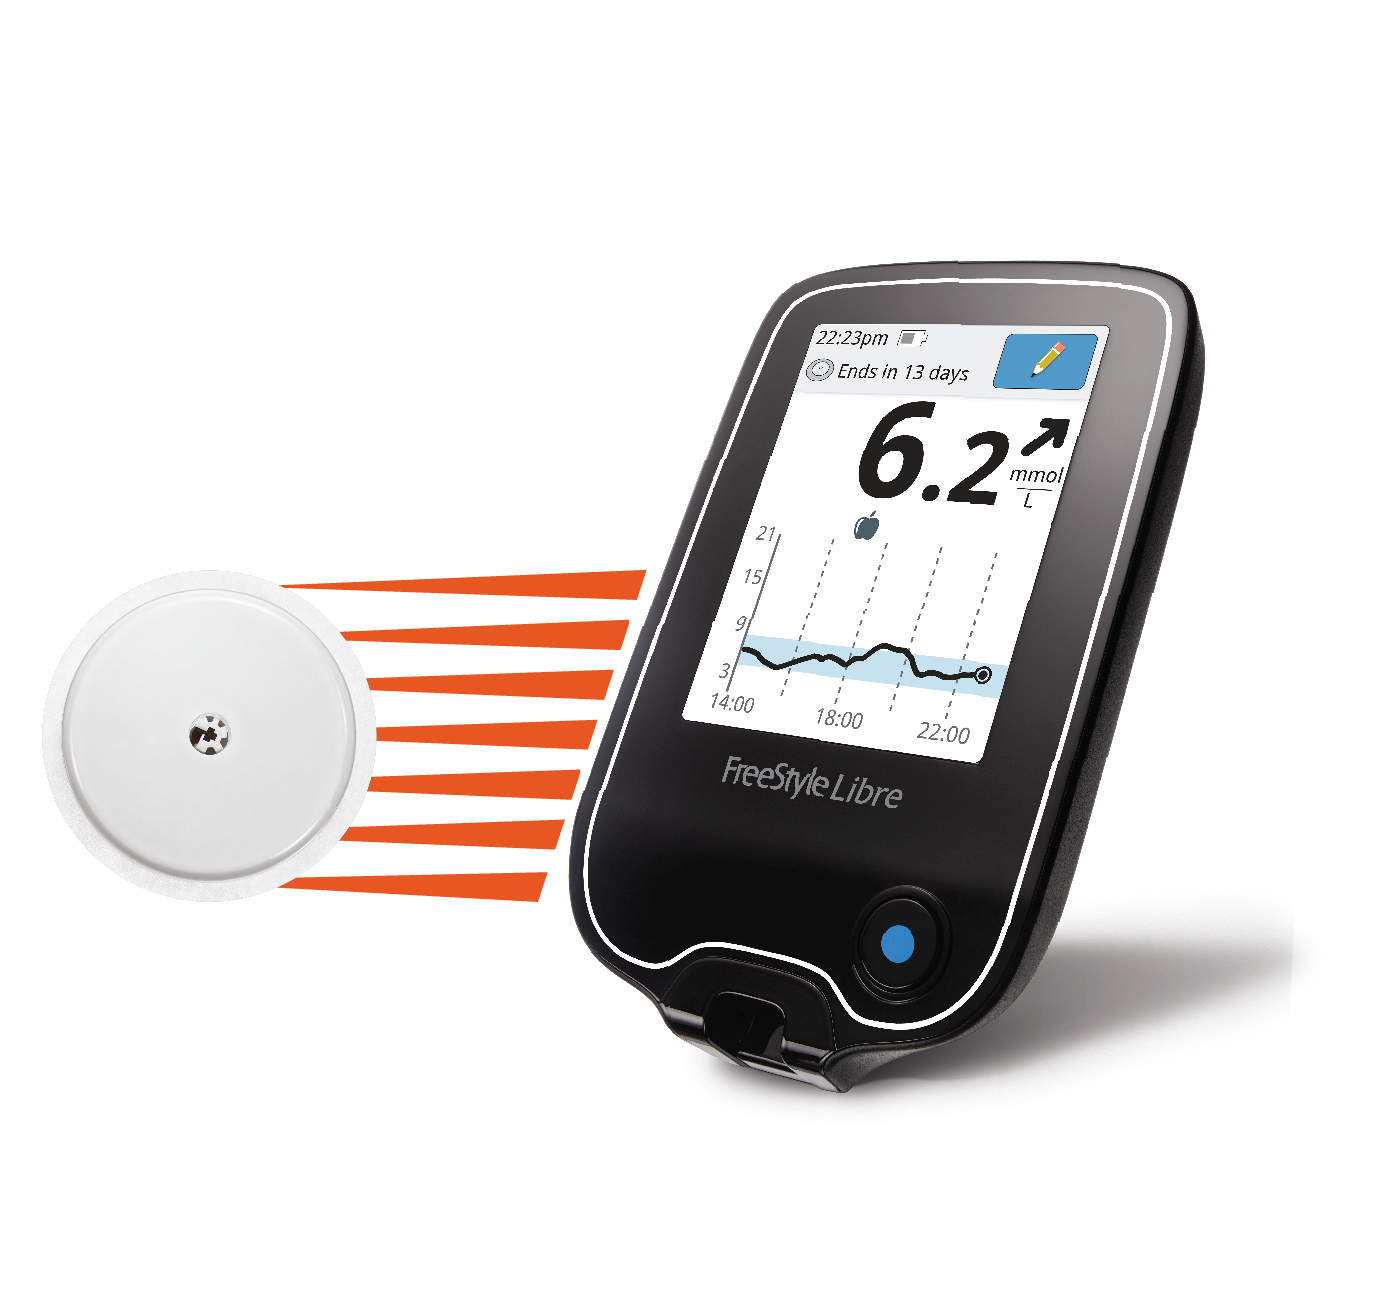 Scan Icon FreeStyle Libre 6.2mmol TAGU GBEN.png